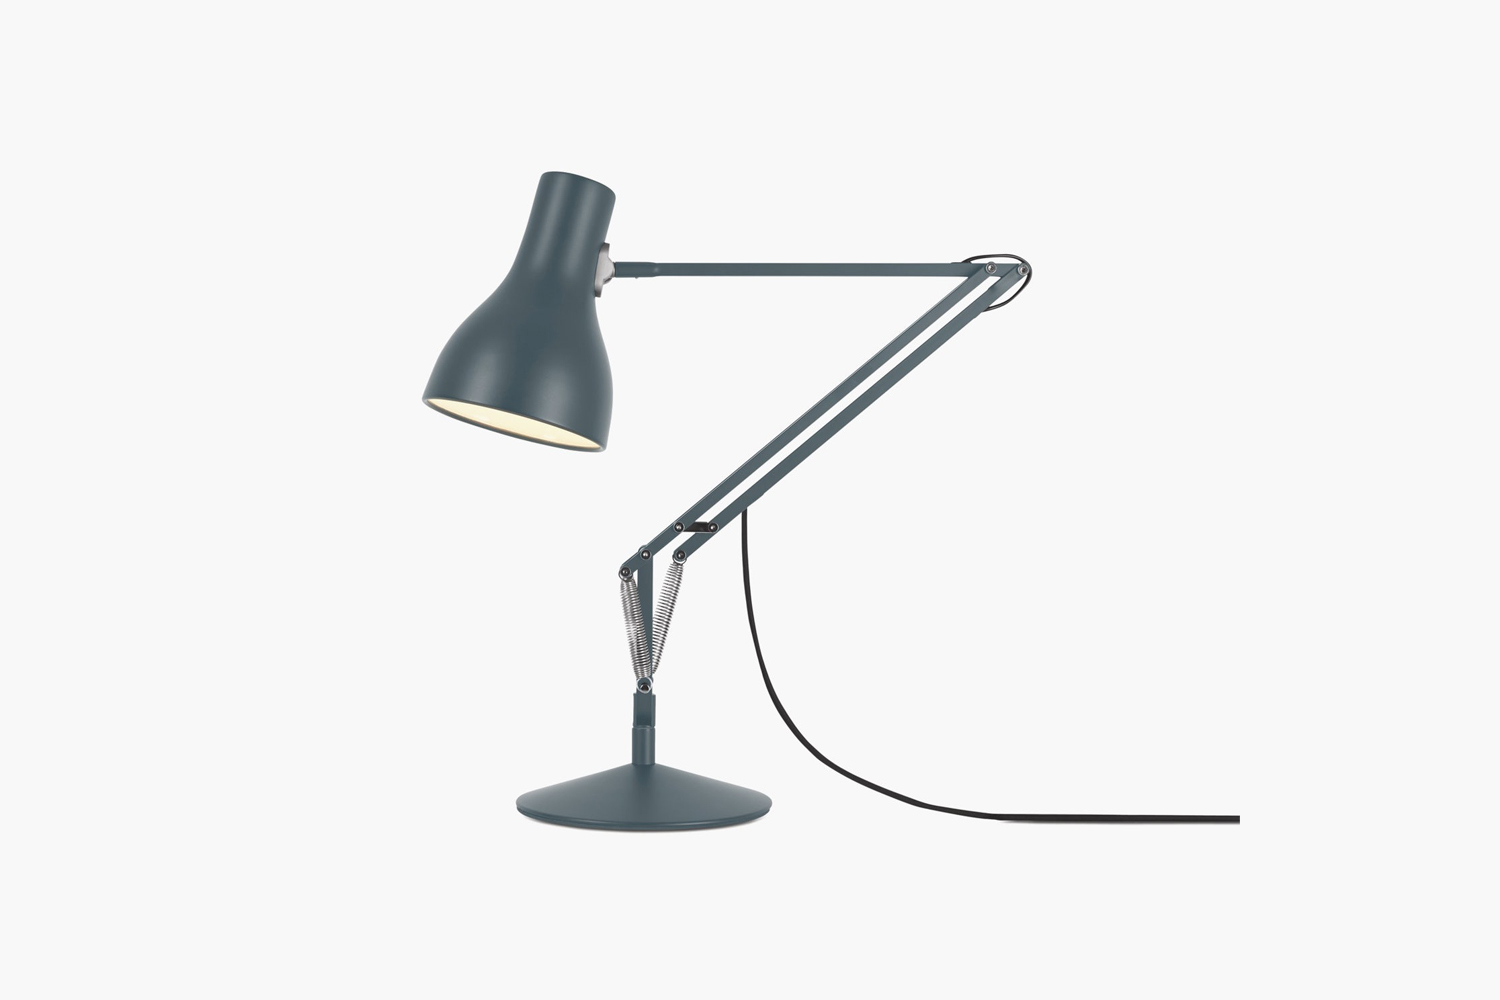 The Anglepoise Type 75 Desk Lamp is $5 at Design Within Reach.